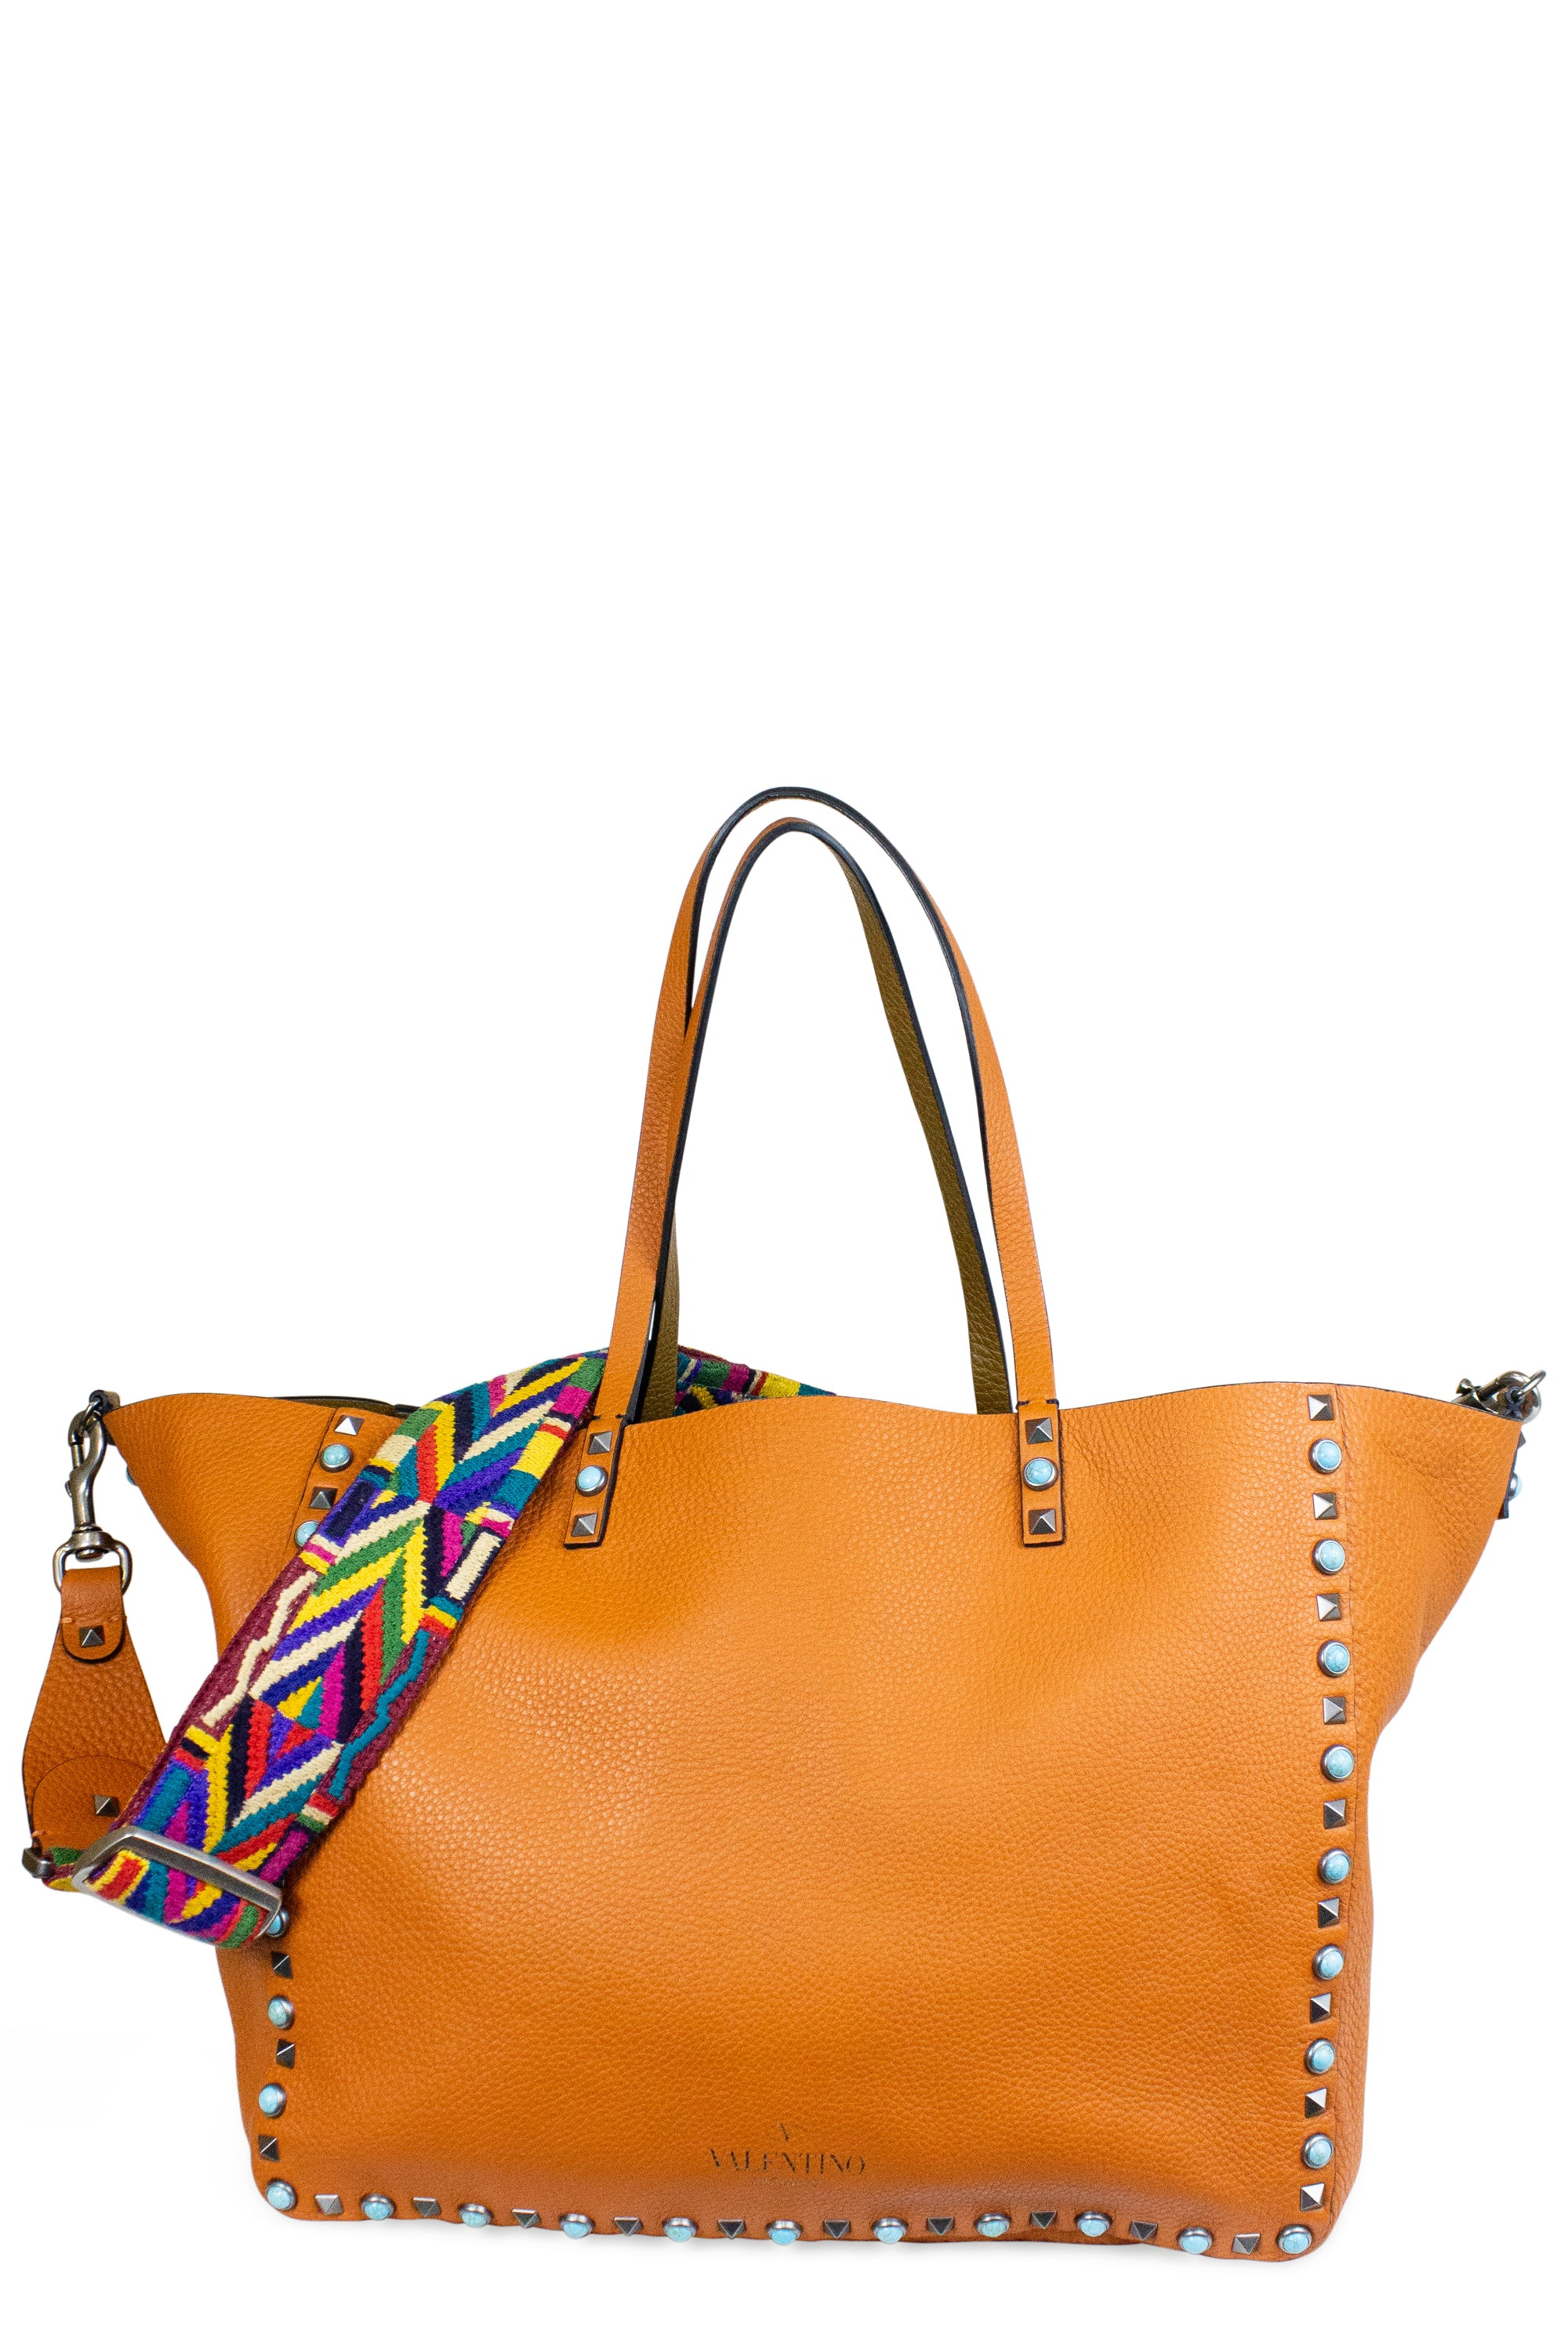 Valentino Rockstud Reversible Native Couture Tote